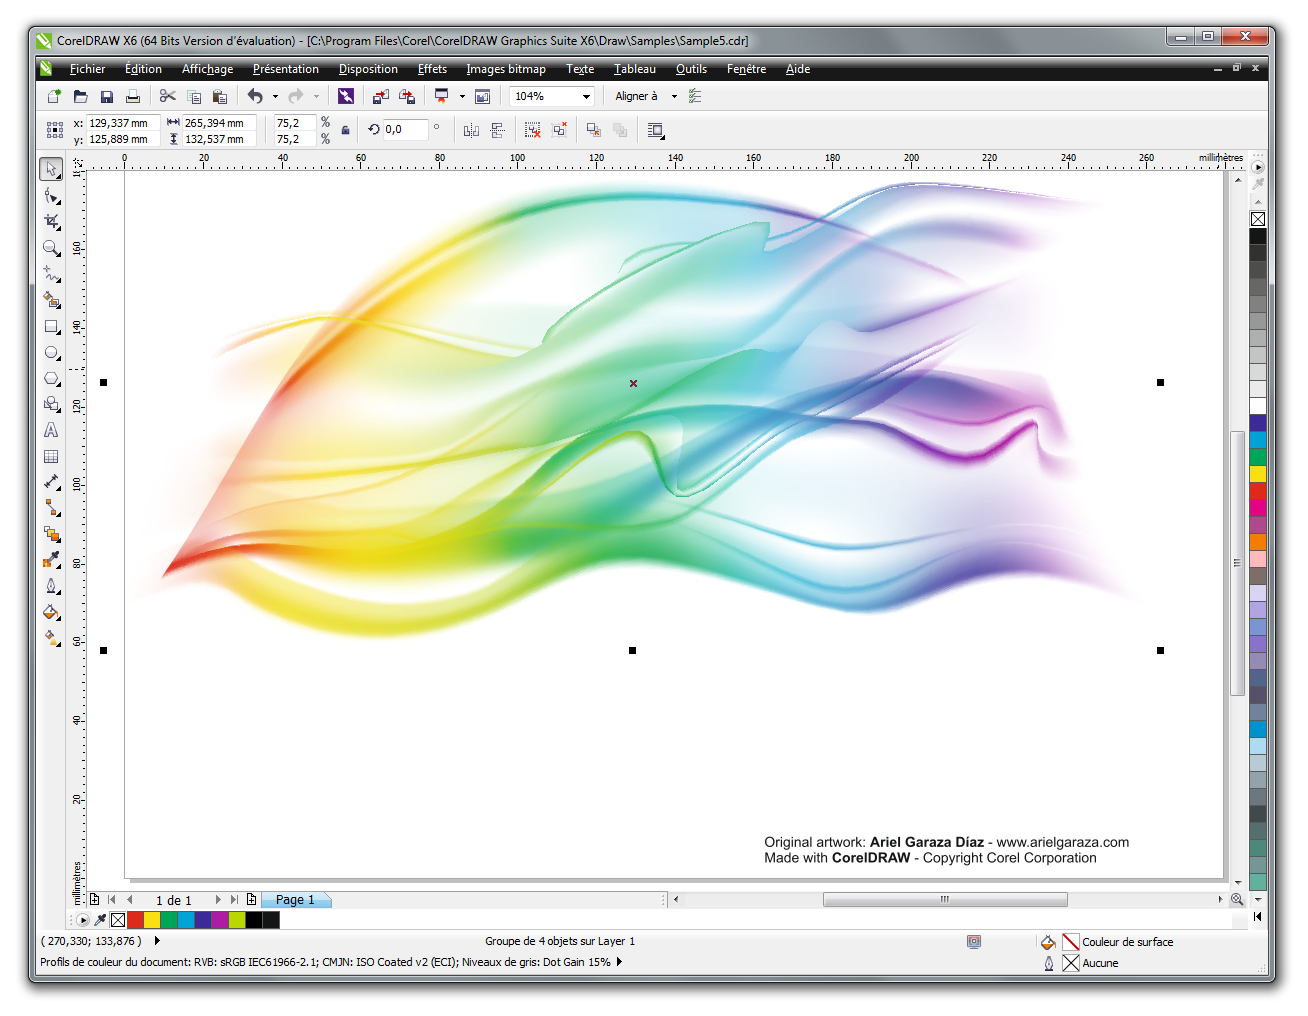 Corel DRAW Graphics Suite X6 Download Free - hitsfreesofts